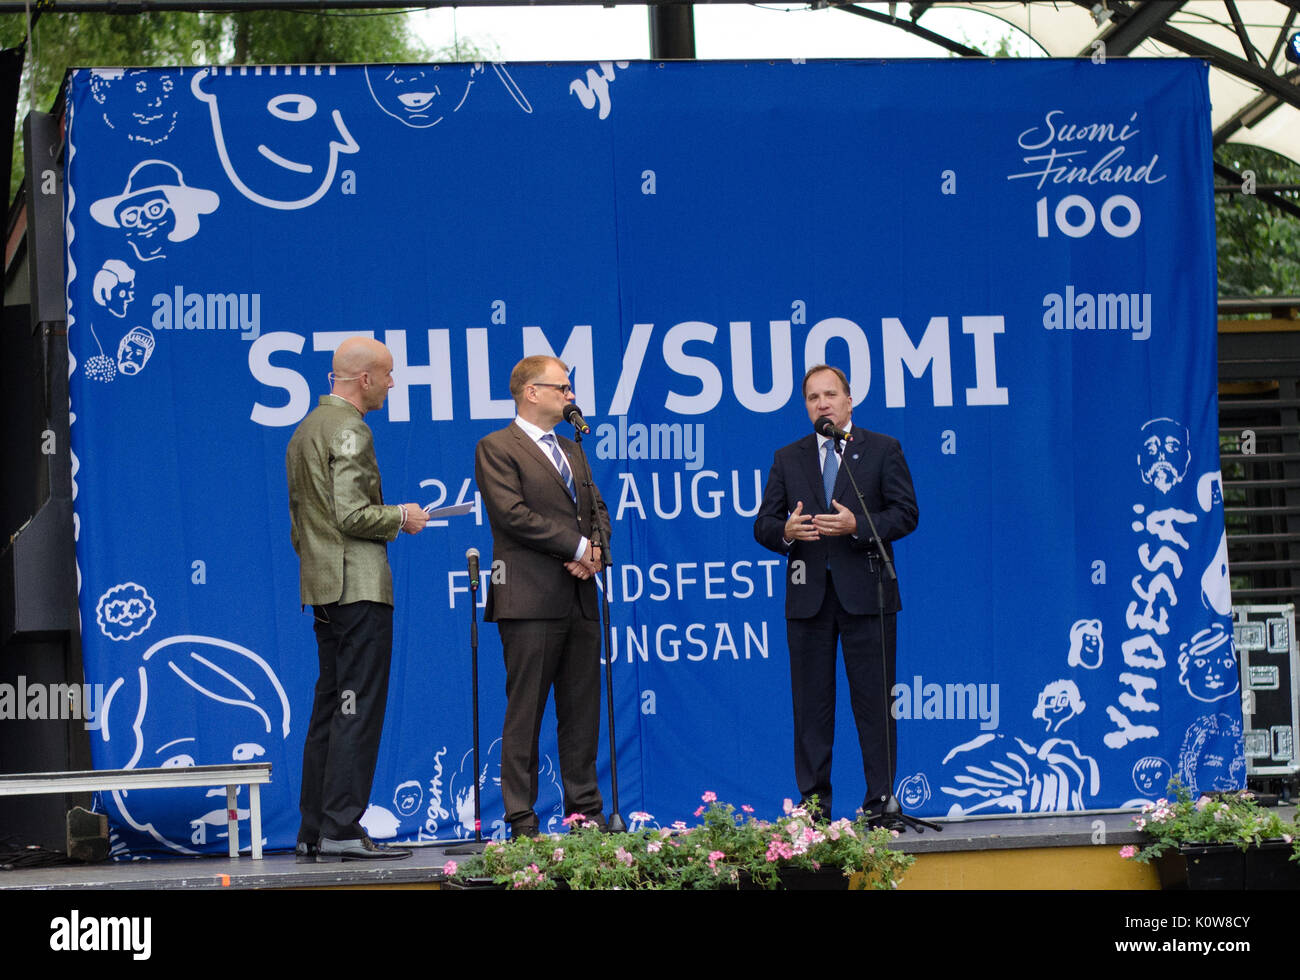 Stockholm, Sweden - August 25 2017. The Prime ministers of both Sweden and Finland visiting the 3-day festival to celebrate Finlands 100-year anniversary in Kungsträdgården in the central part of Stockholm. Talking with the media-personality Mark Levengood on the stage. Credit: Jari Juntunen/Alamy Live News - Stock Image